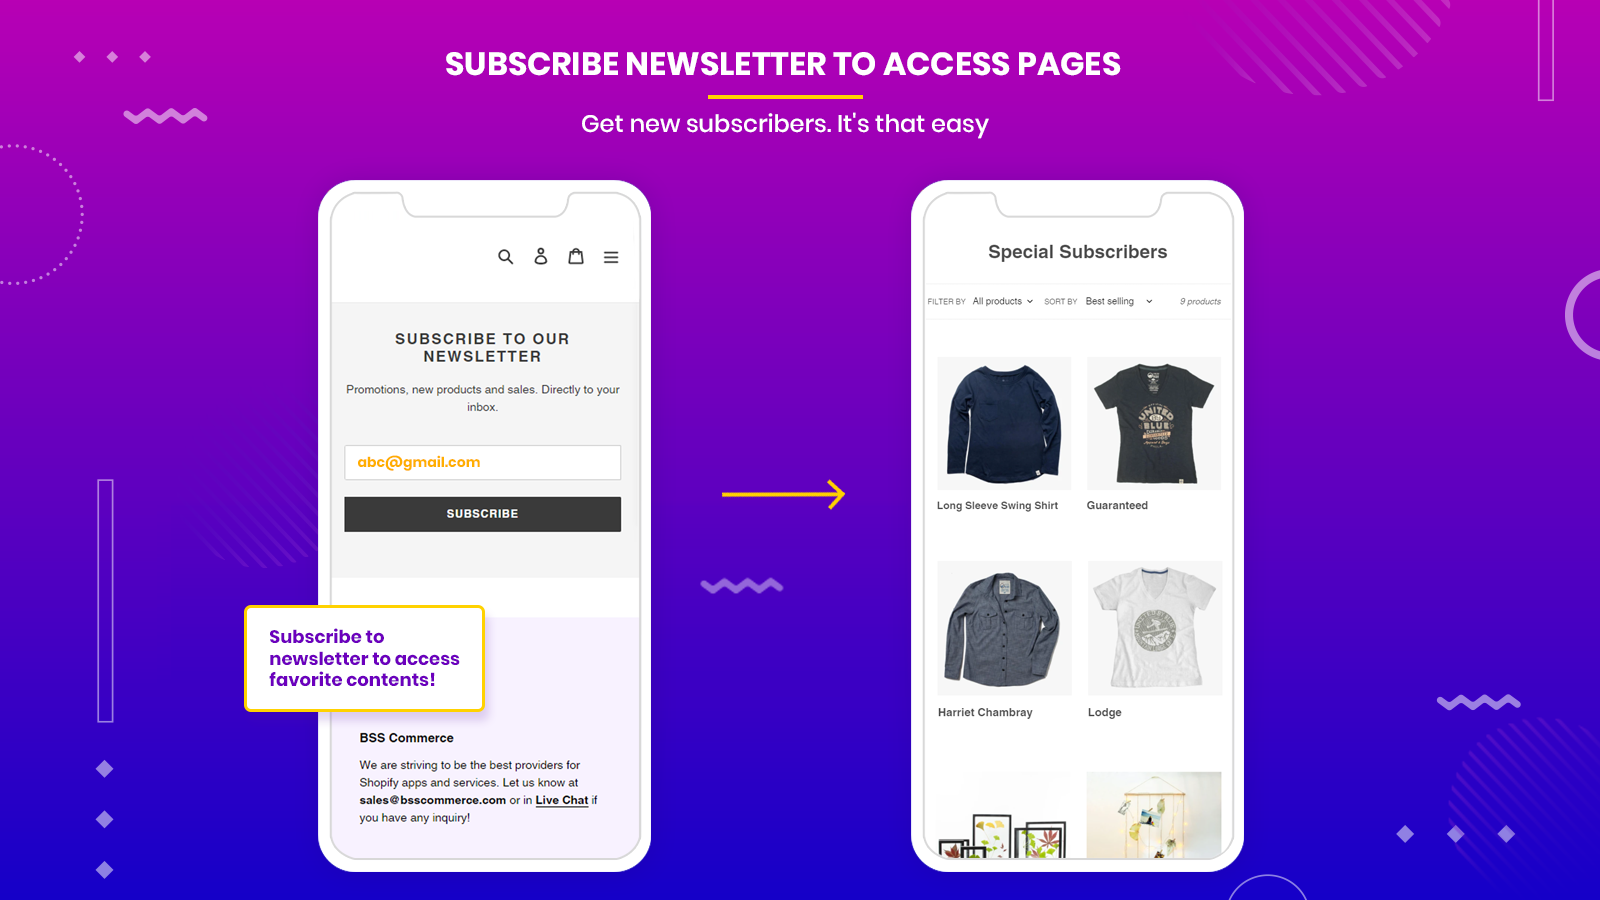 Get subscribers to Subscribe to Access their favorite content!